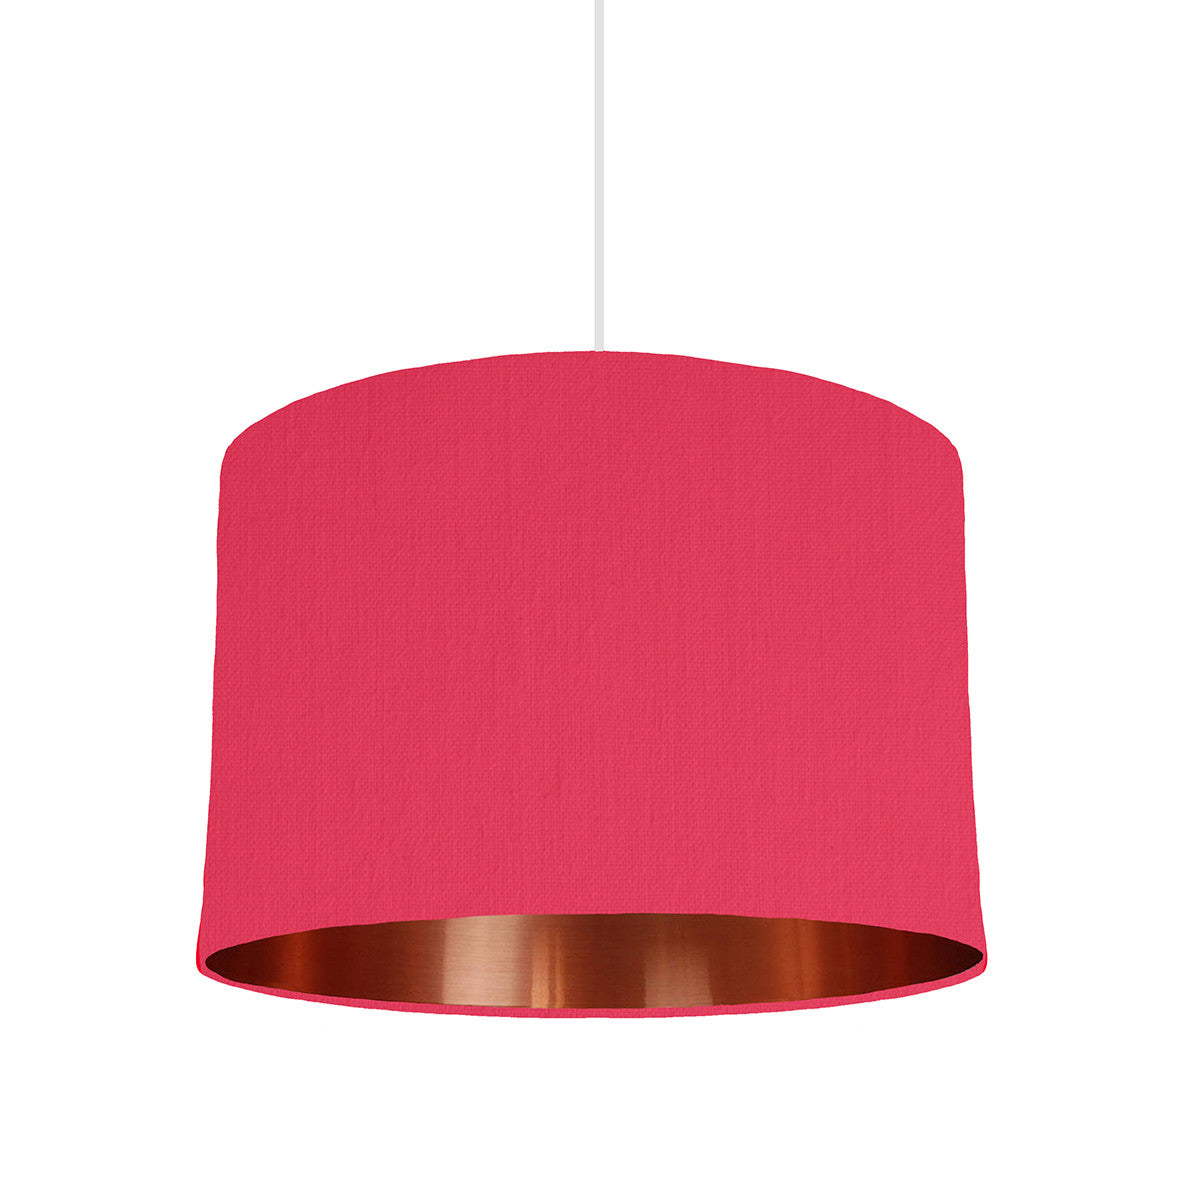 Cerise Pink Lampshade With Copper Lining, 30cm wide